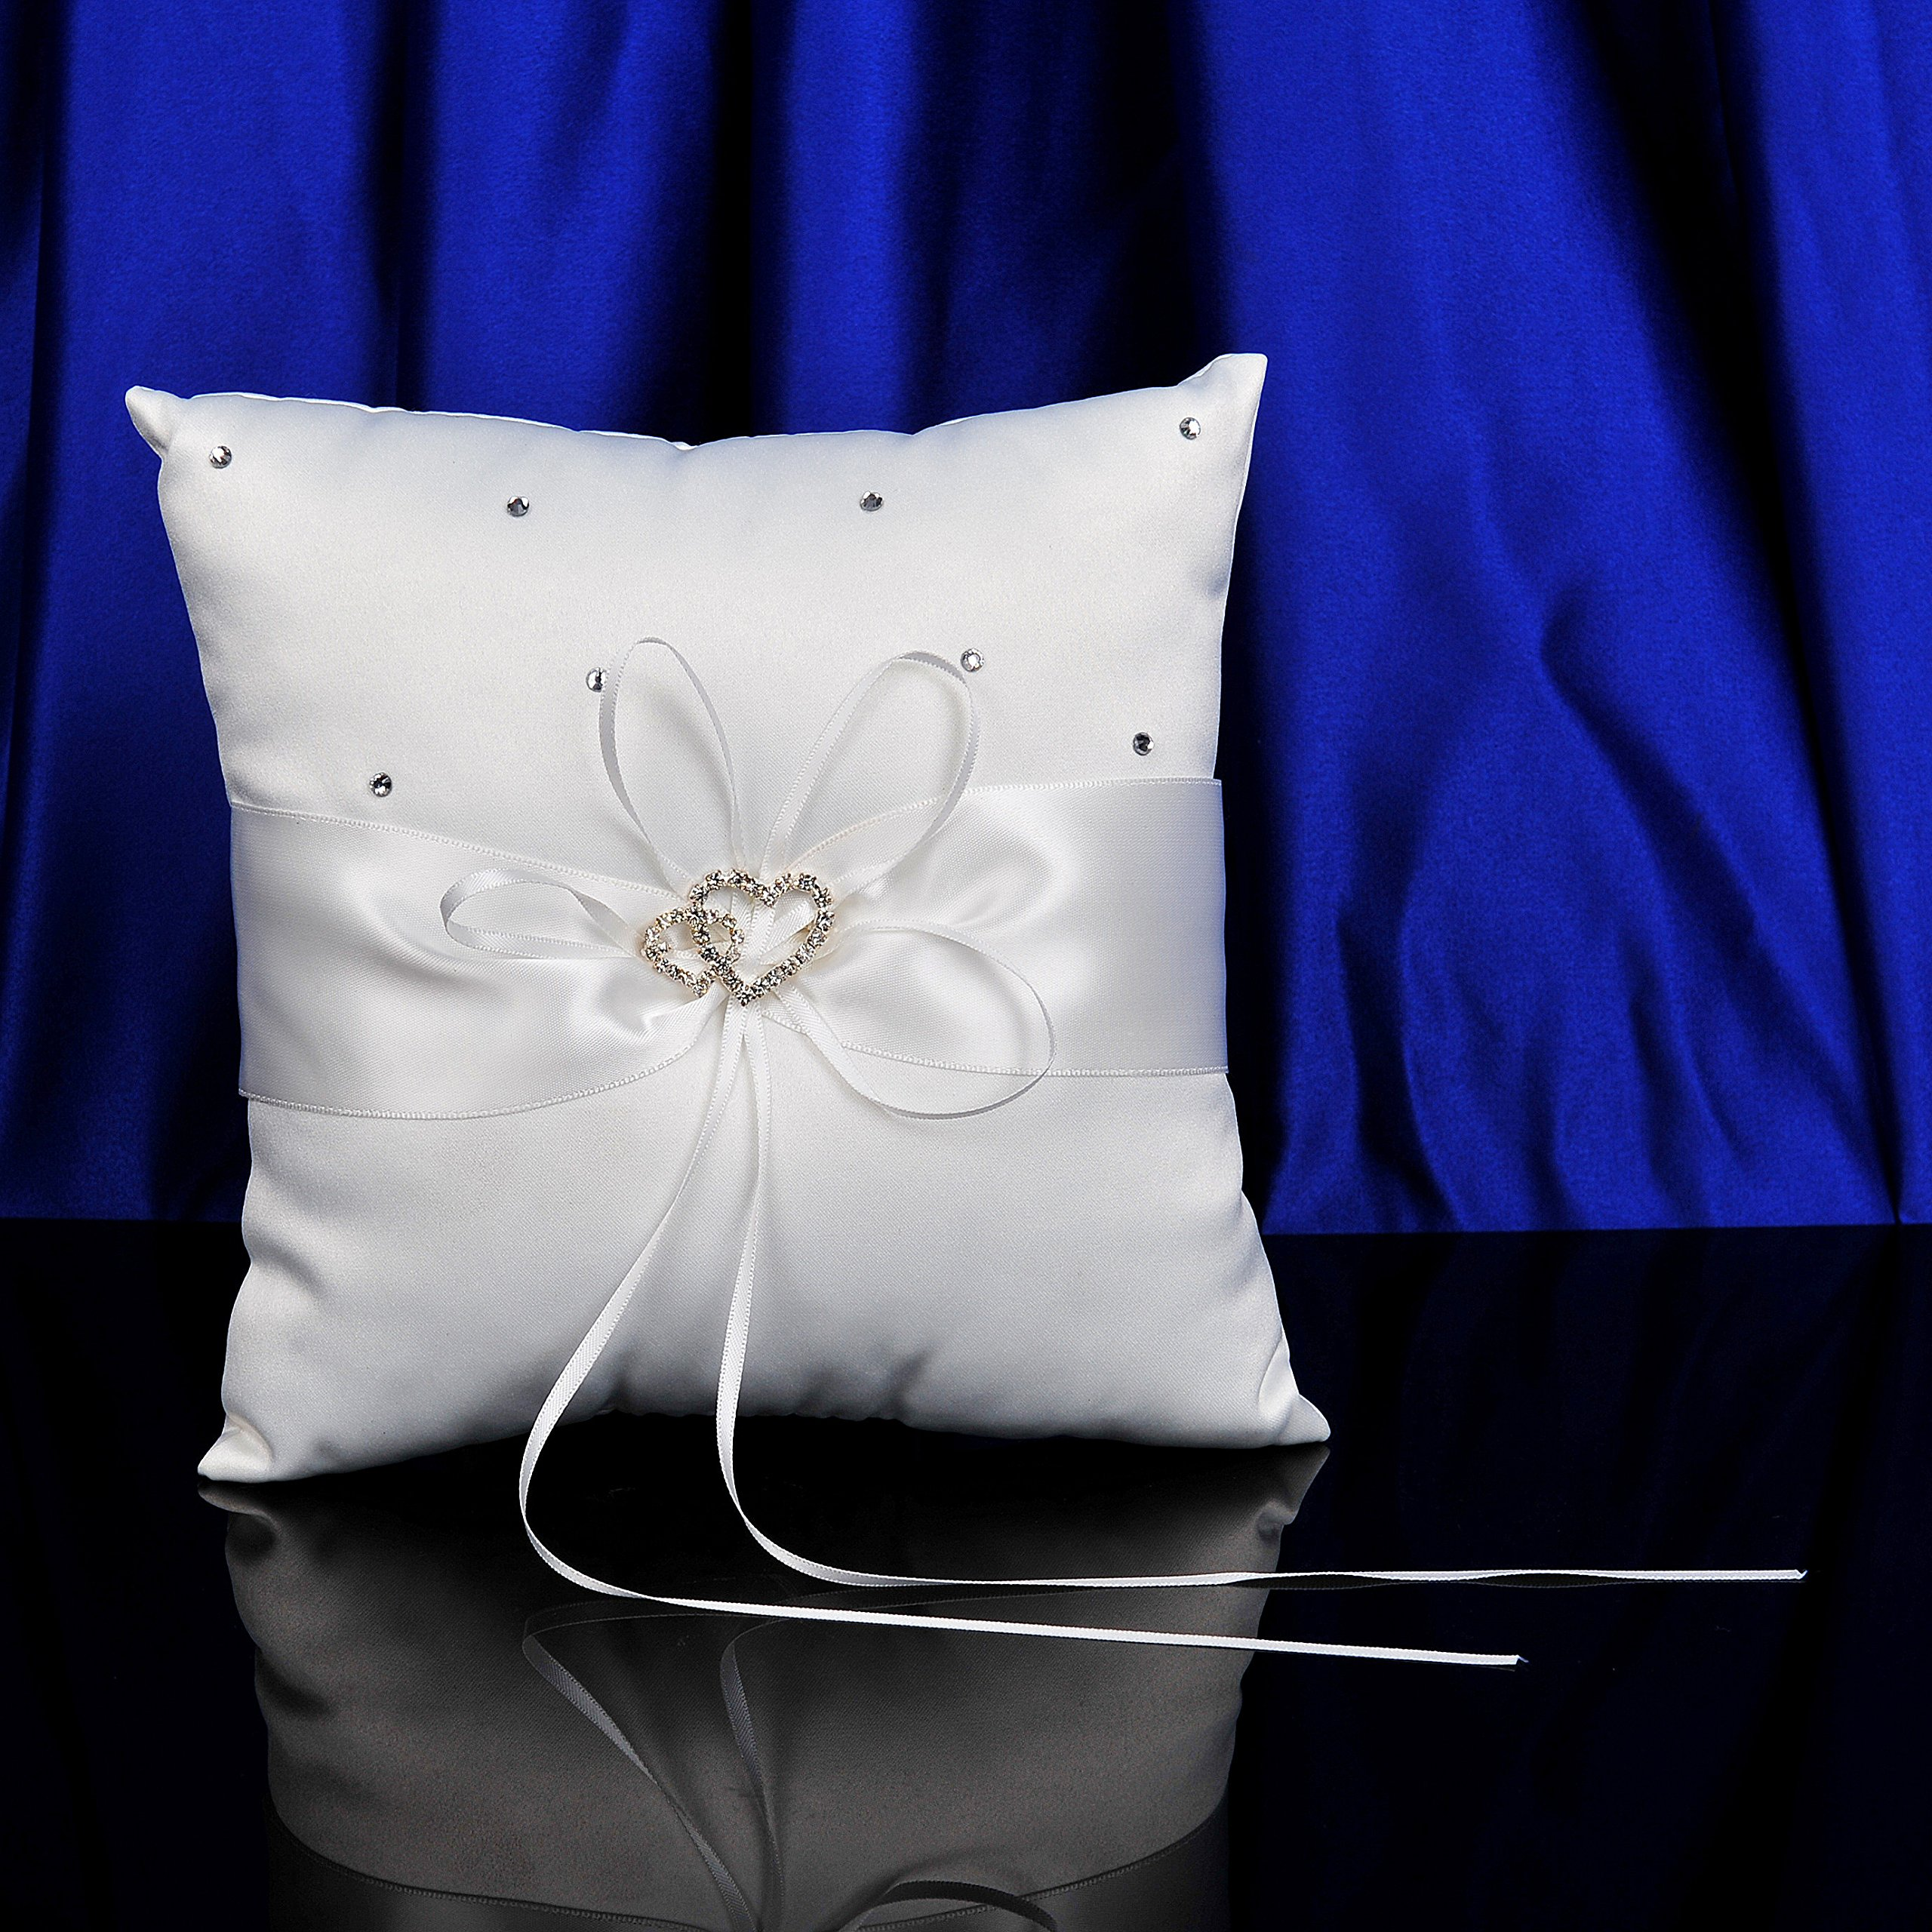 AWEI Wedding Ring Bearer Pillow - Ivory Satin Cushion Bearer 7.5 Inch with Double Hearts